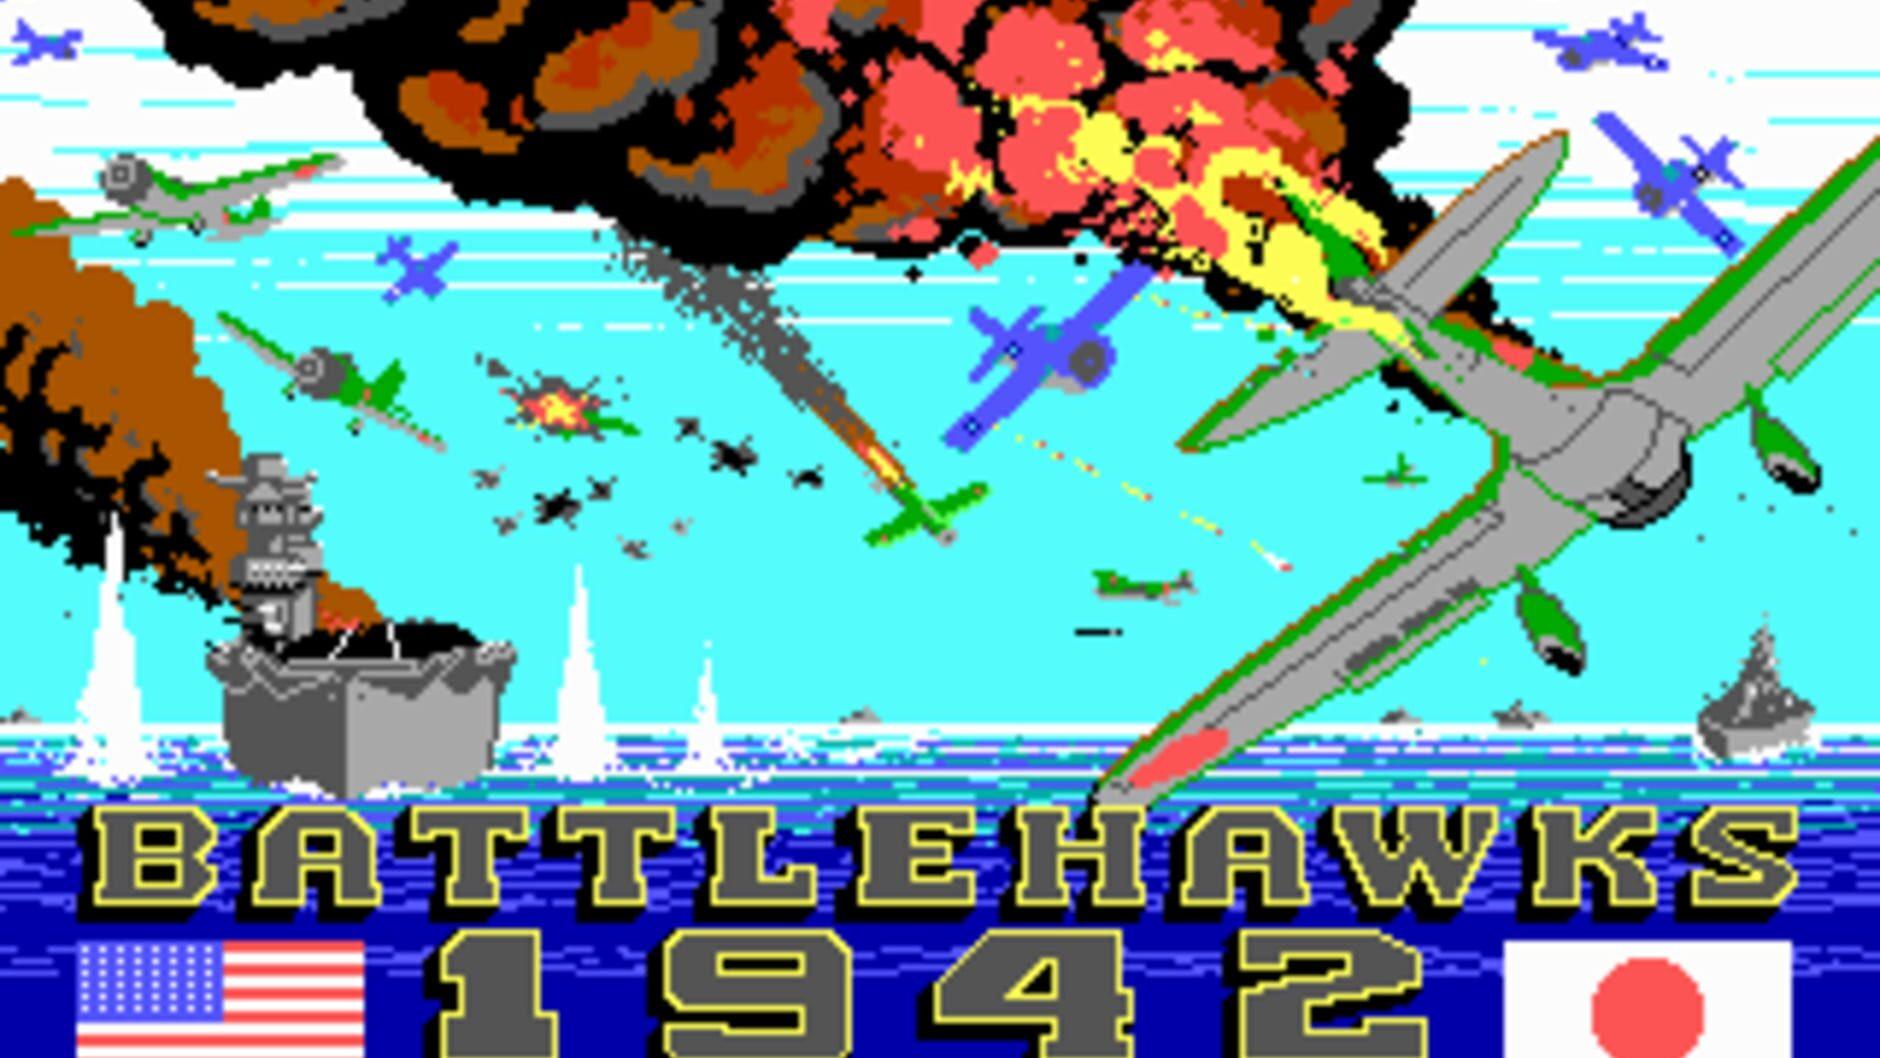 Battlehawks 1942 - 1